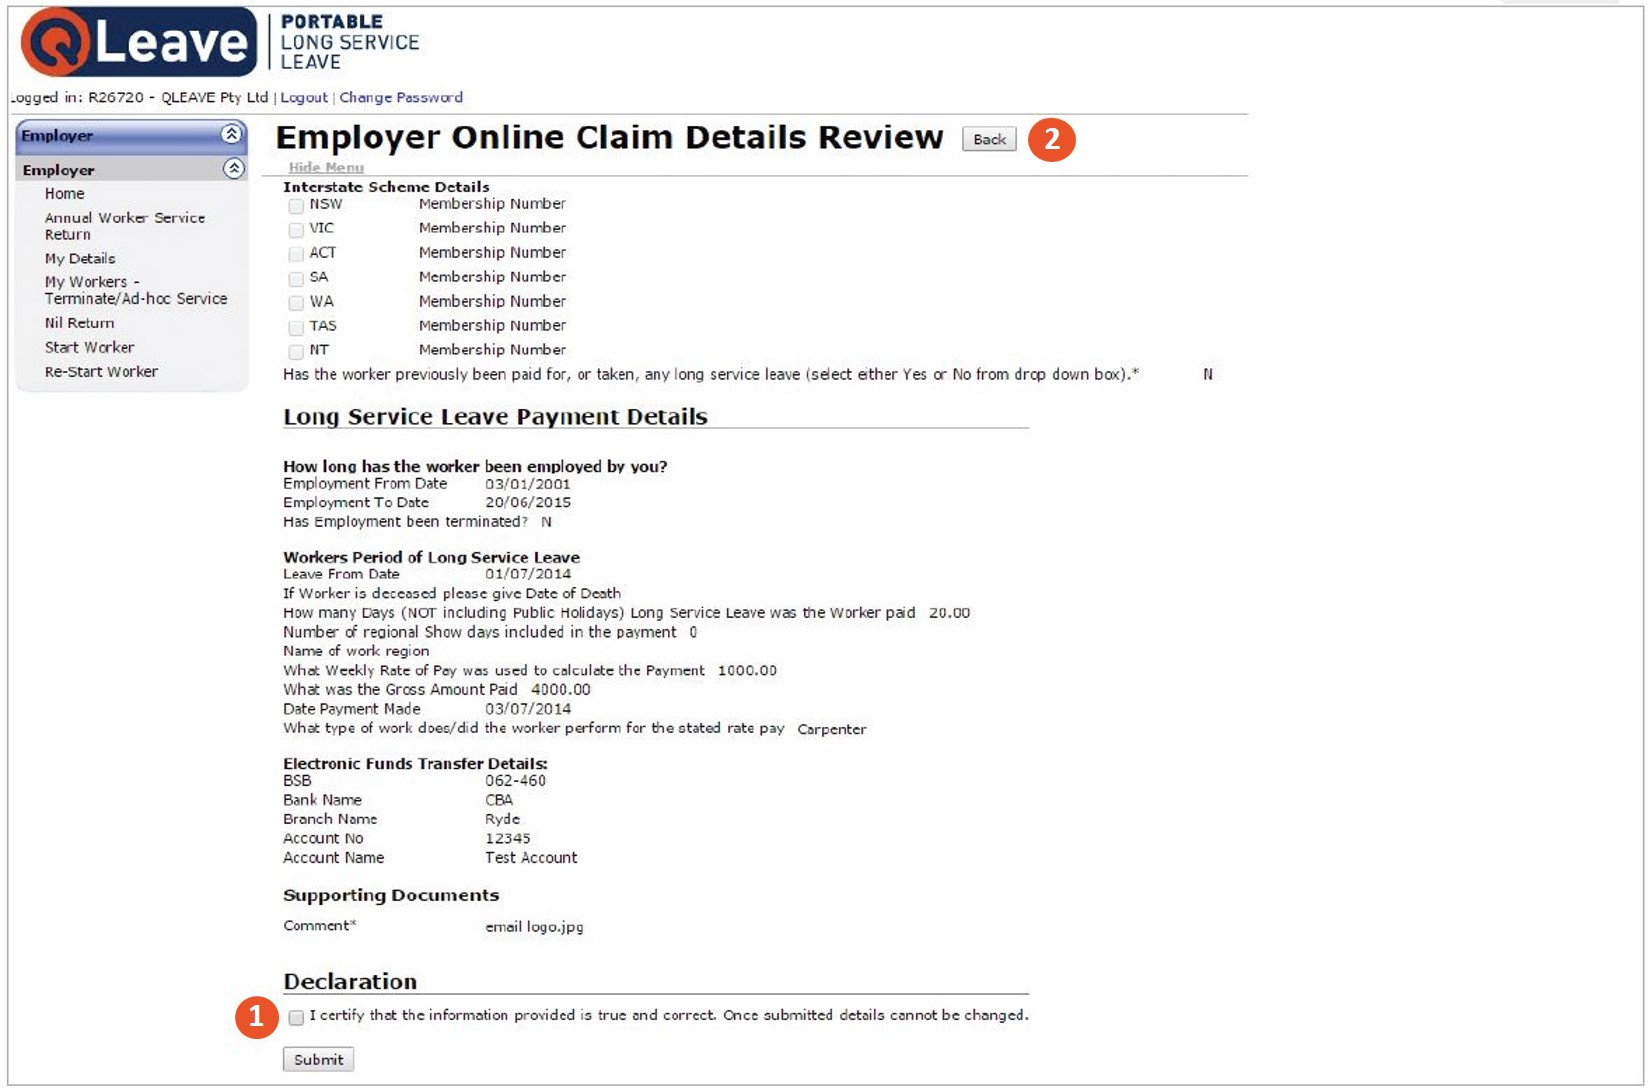 Review your online claim